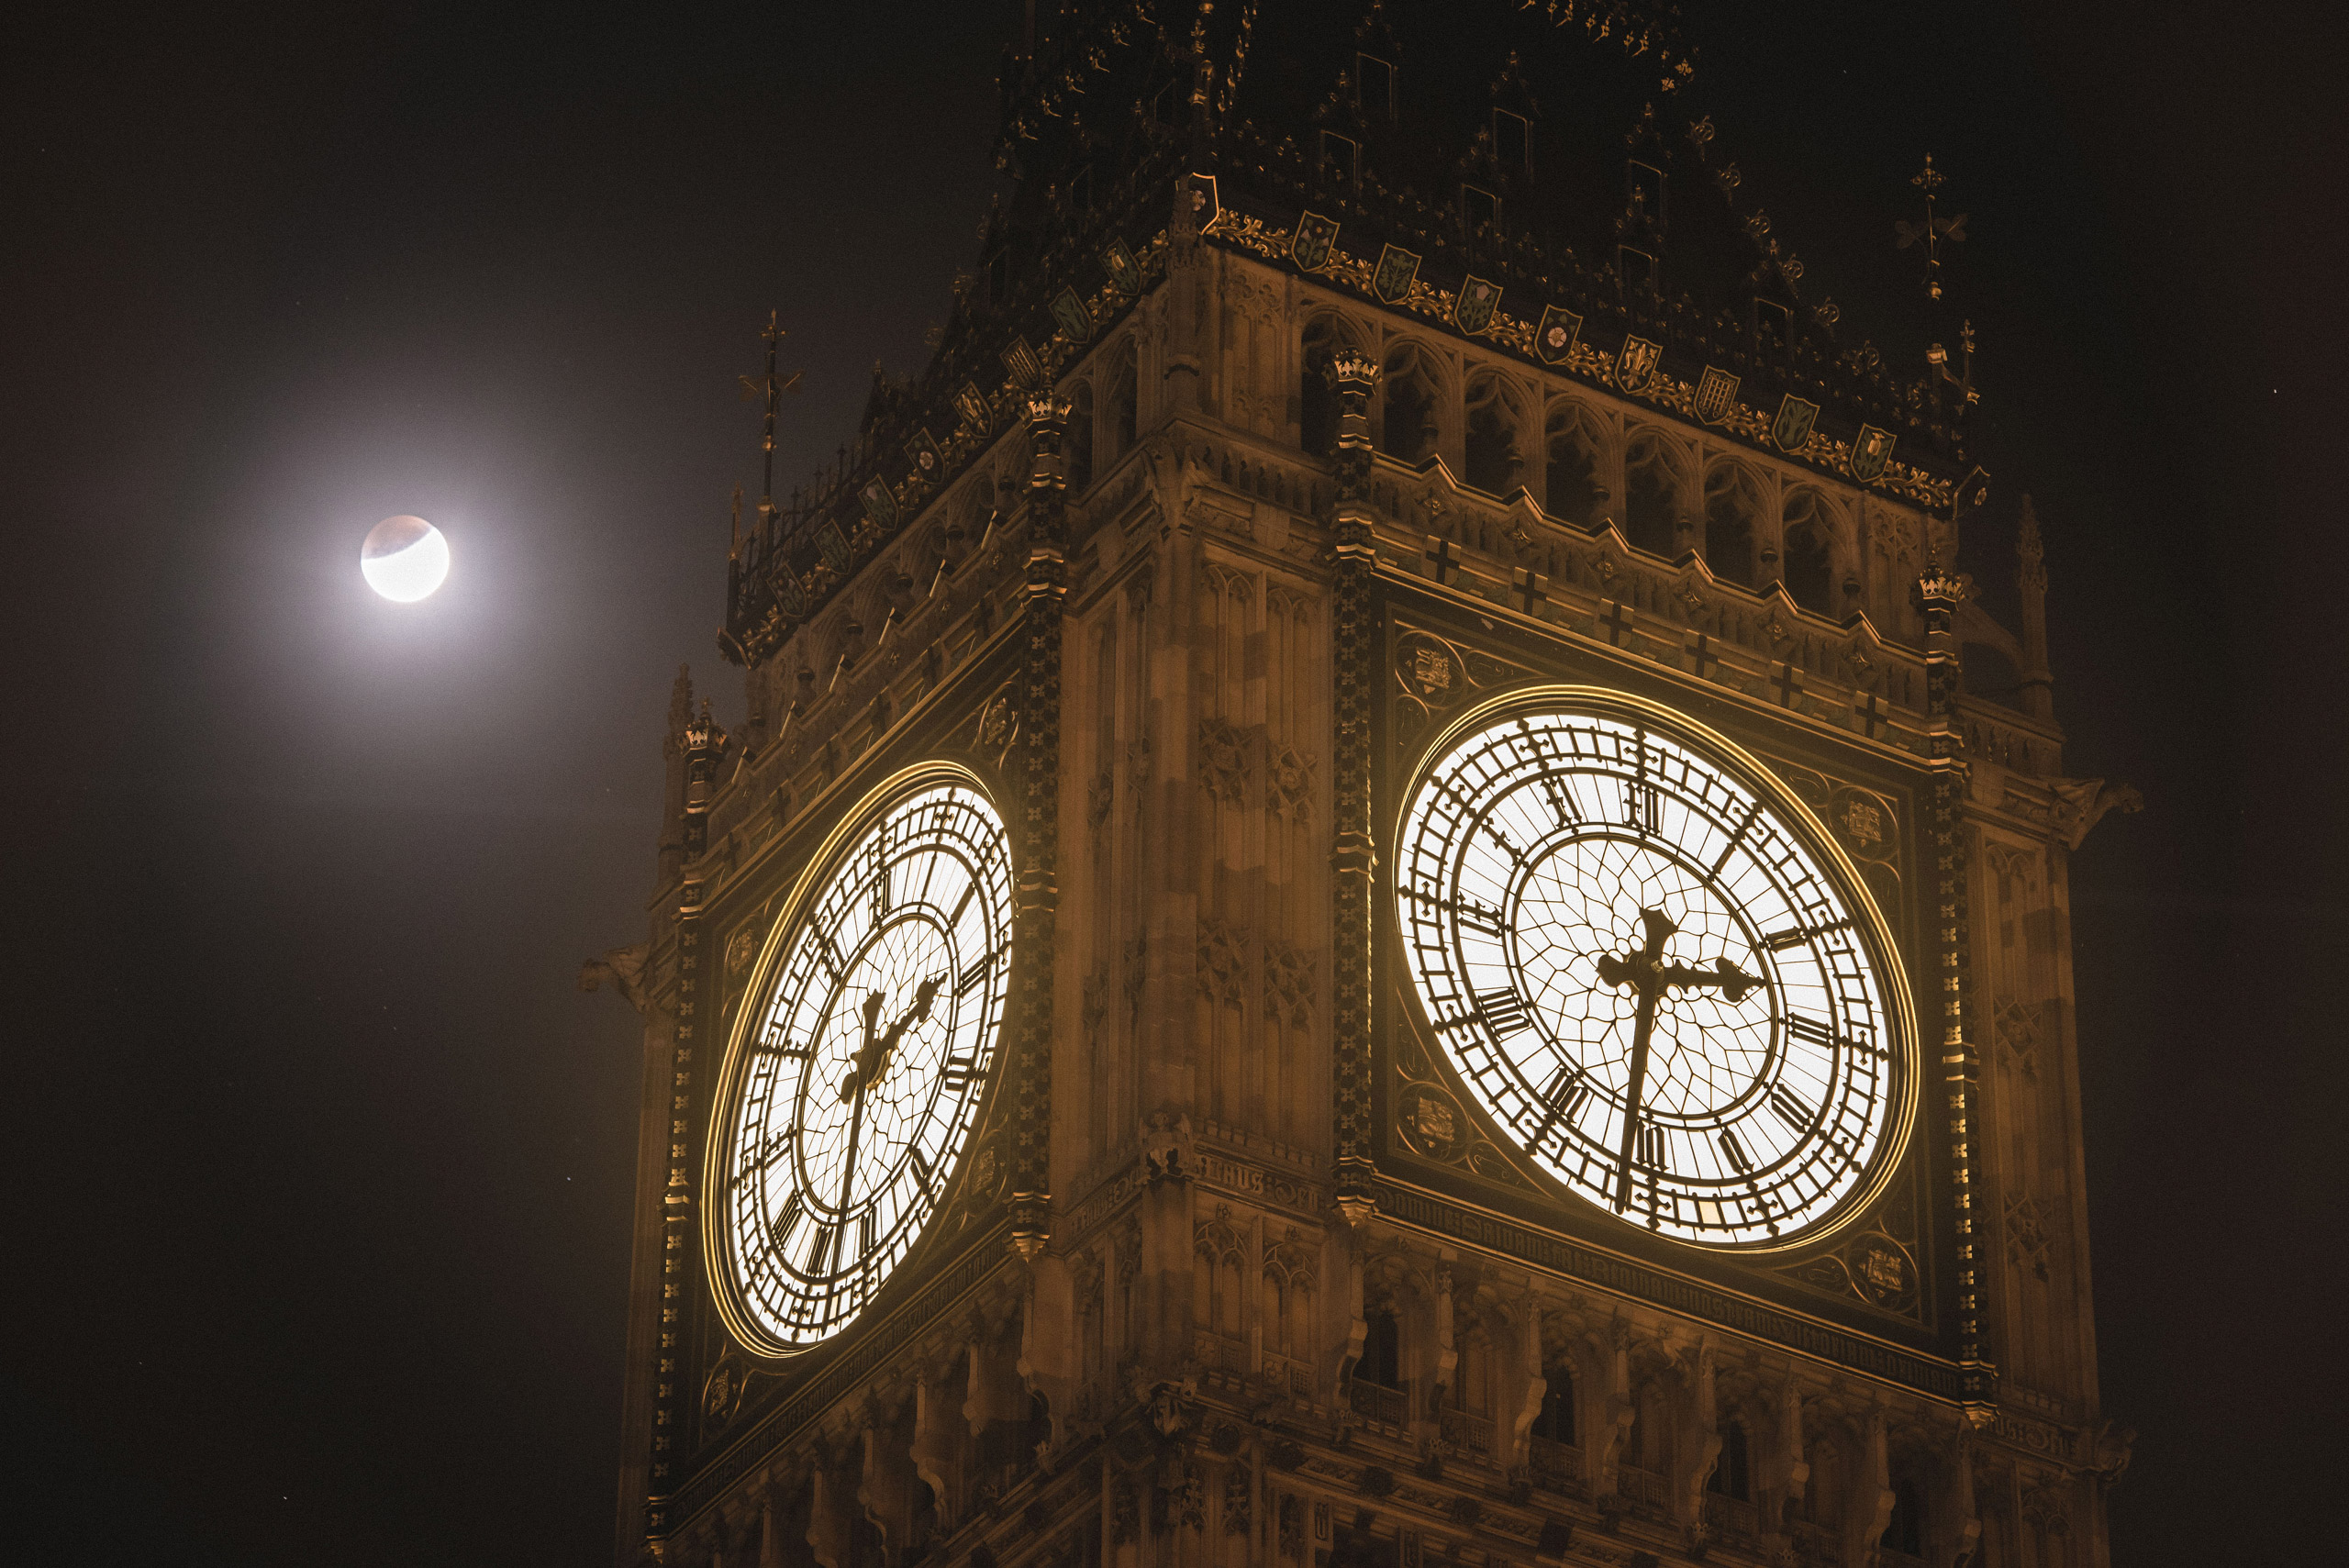 The Supermoon is seen during the early stages of the Lunar Eclipse near Big Ben on Sept. 28, 2015 in London.